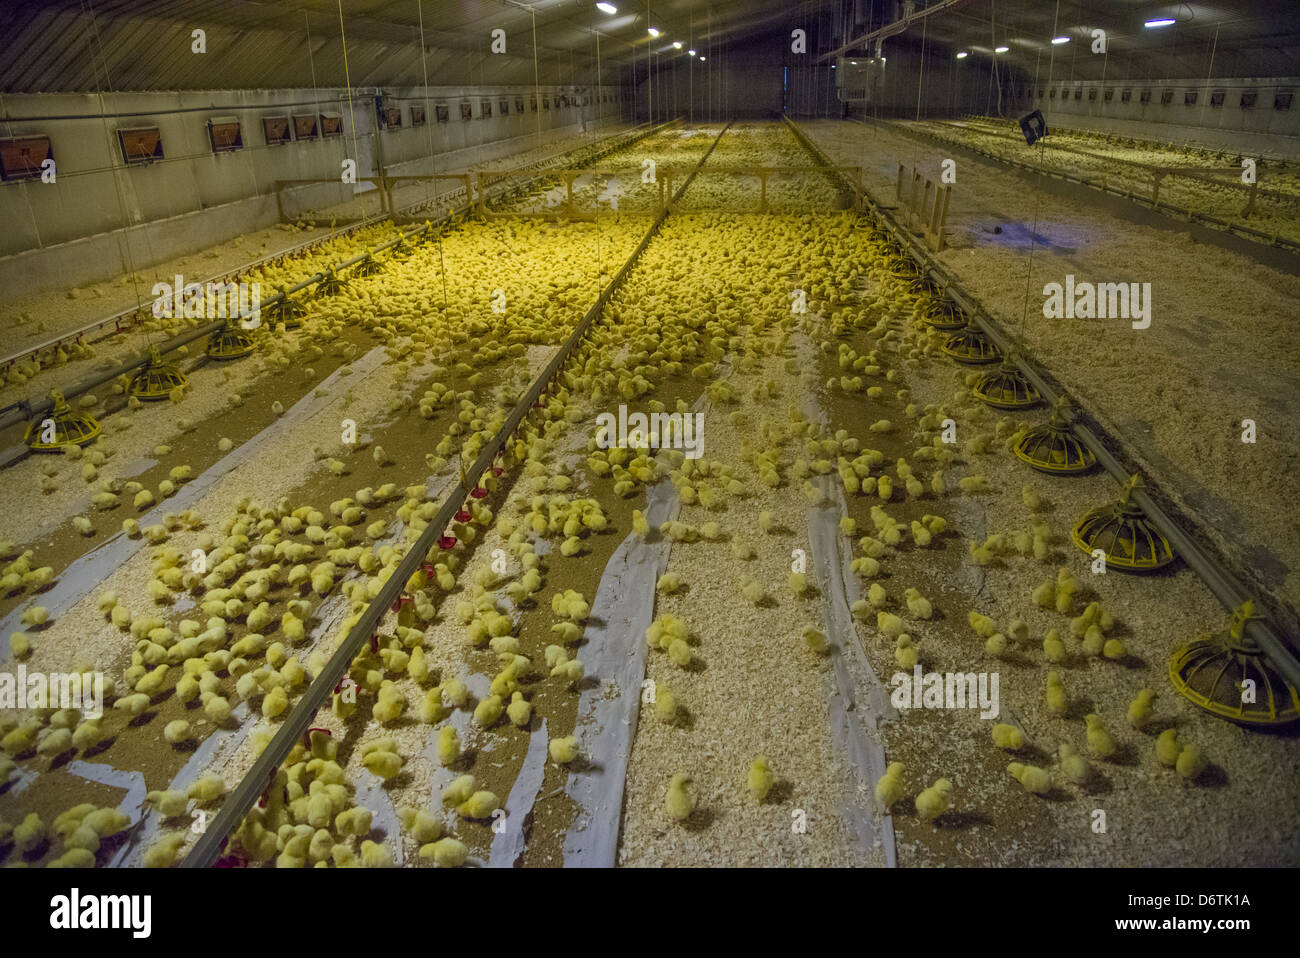 Chicken farming one-day old Ross 308 broiler chicks automatic drinkers feeders in poultry unit Lancashire England - Stock Image